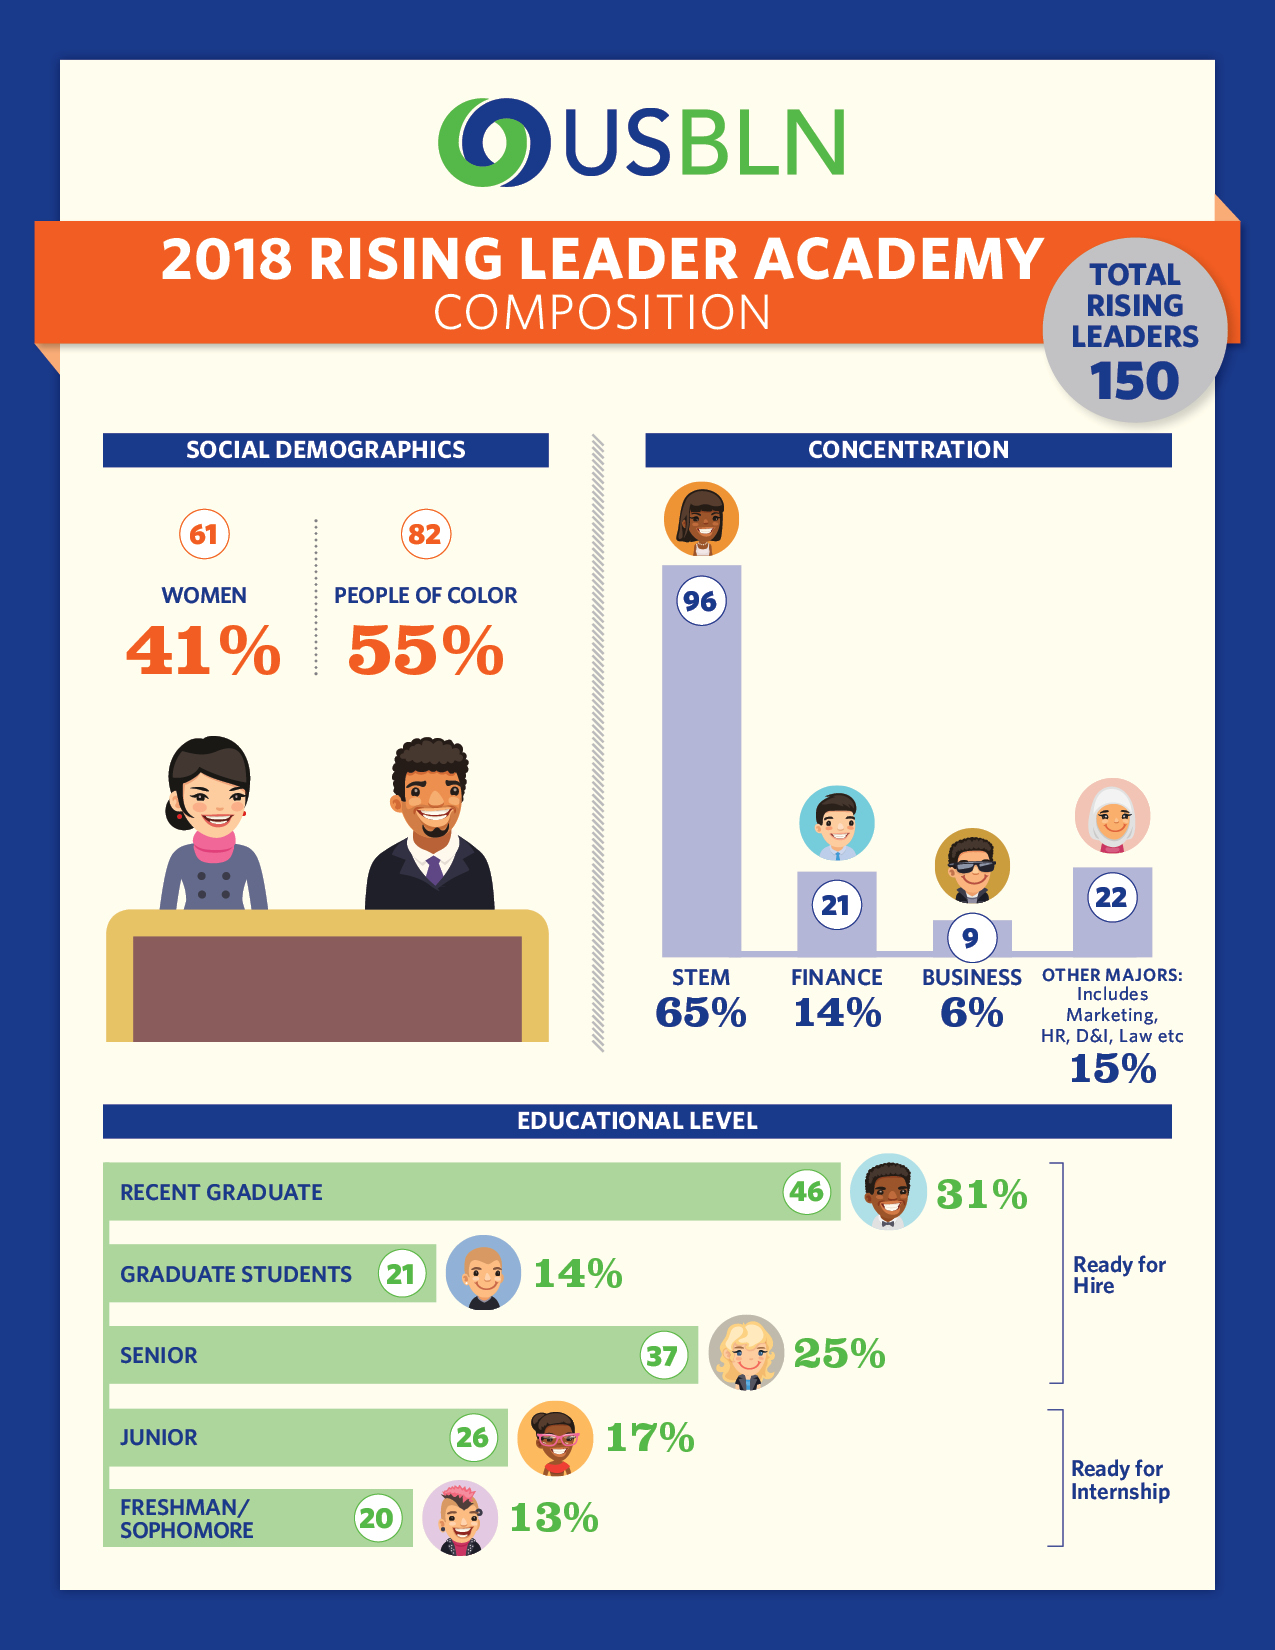 Rising Leader composition breakdown inforgraphic. See below for image description.